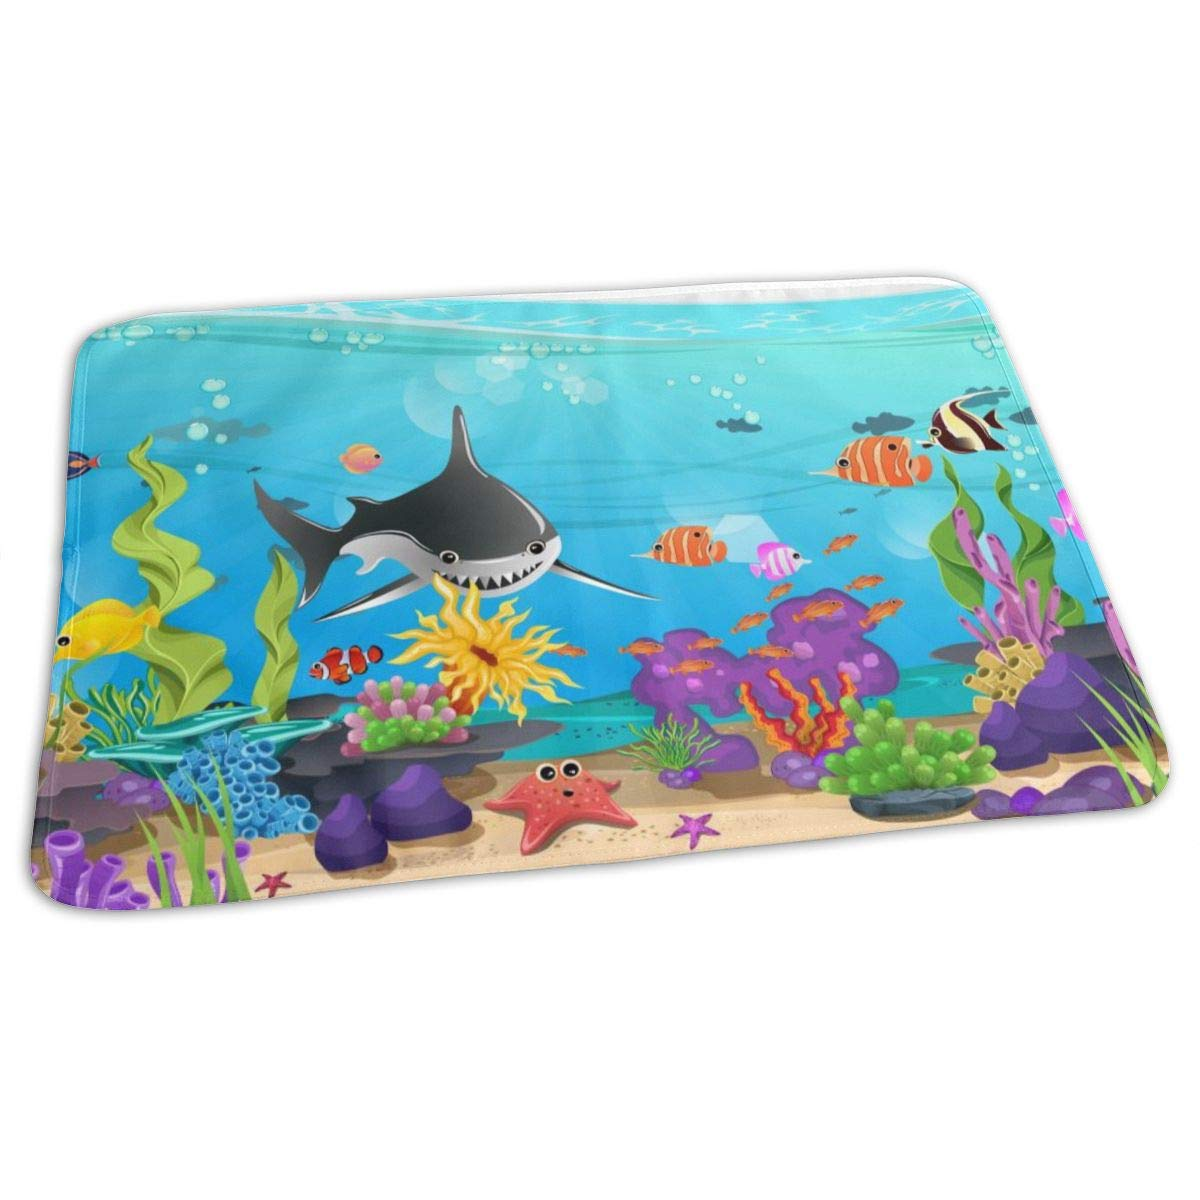 Osvbs Lovely Baby Reusable Waterproof Portable Beautiful Ocean with Seagrass Coral Sharks Changing Pad Home Travel 27.5''x19.7'' by Osvbs